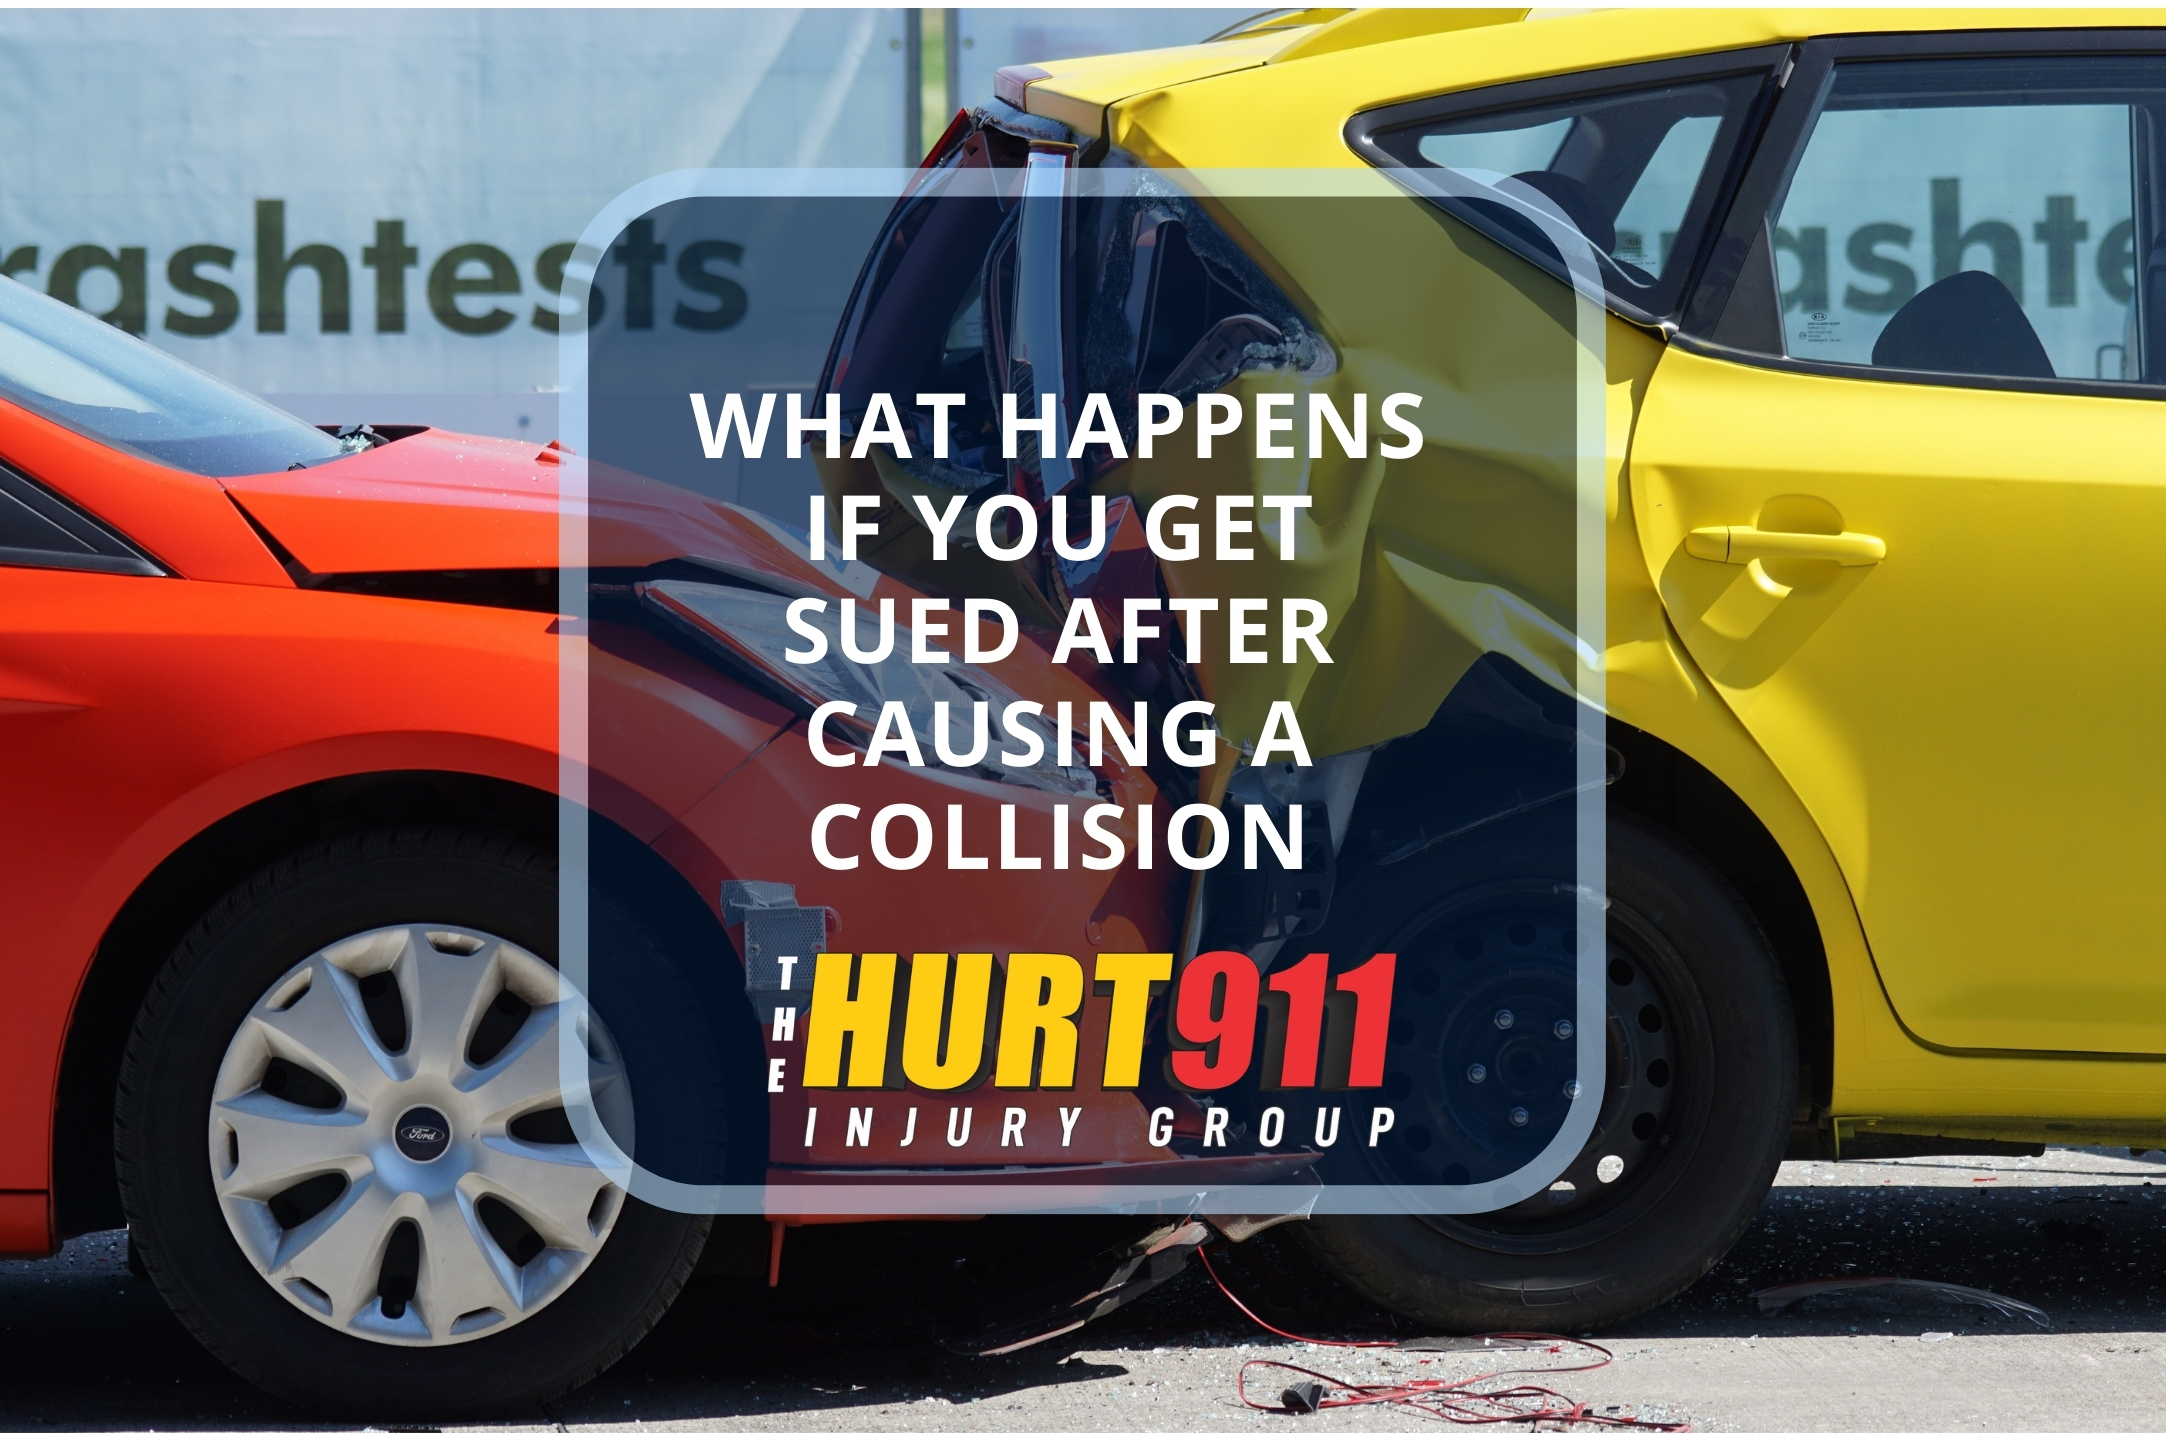 What Happens If You Get Sued After Causing a Collision?